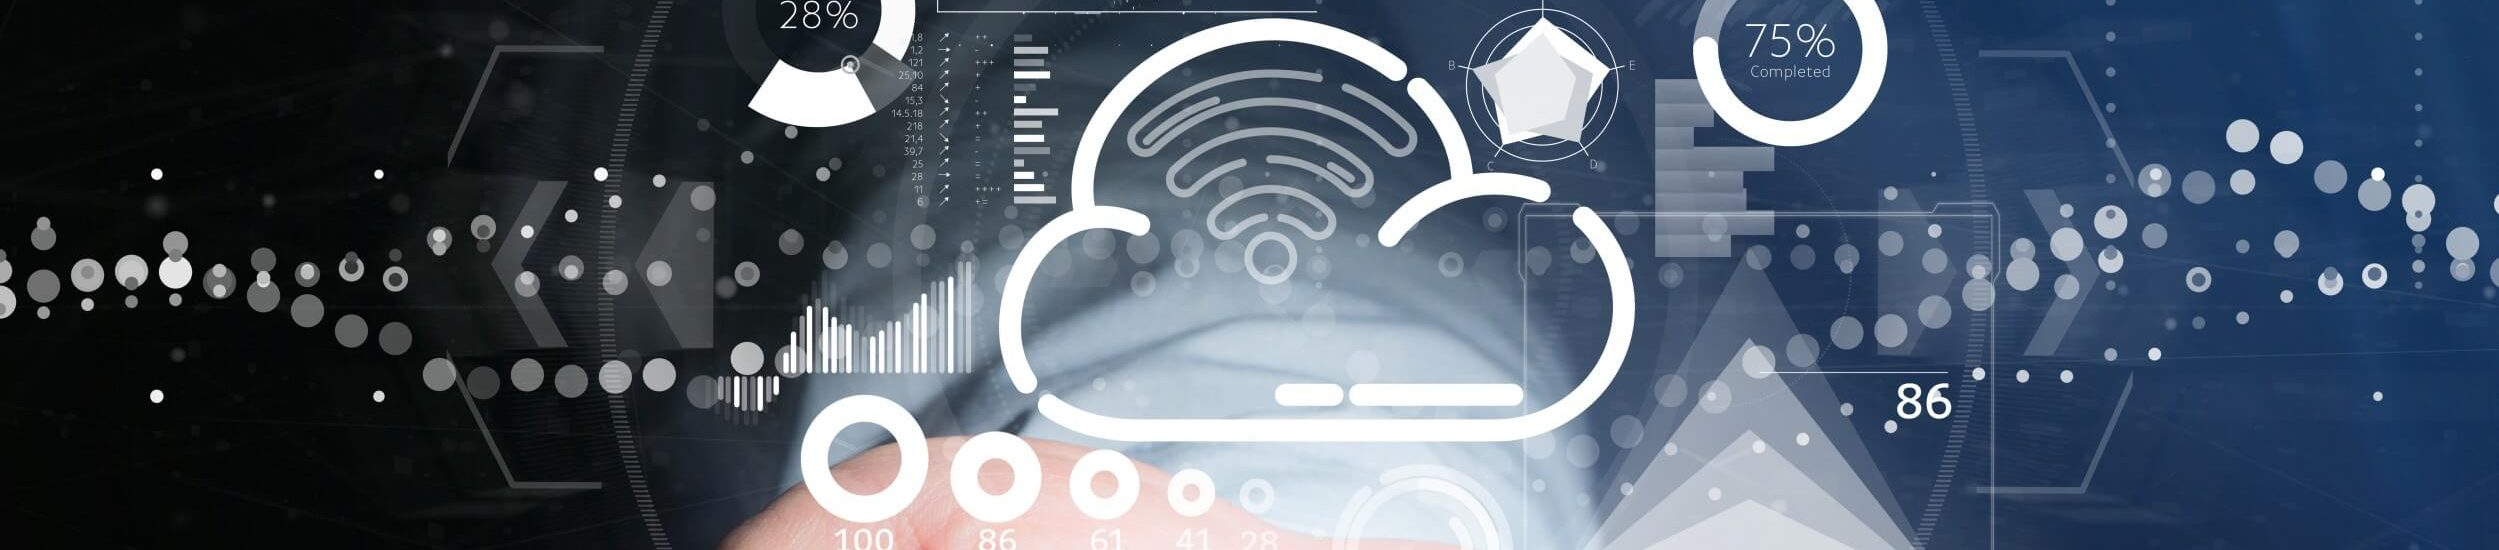 businessman-holding-cloud-wifi-concept-with-icon-stats-data-3d-rendering